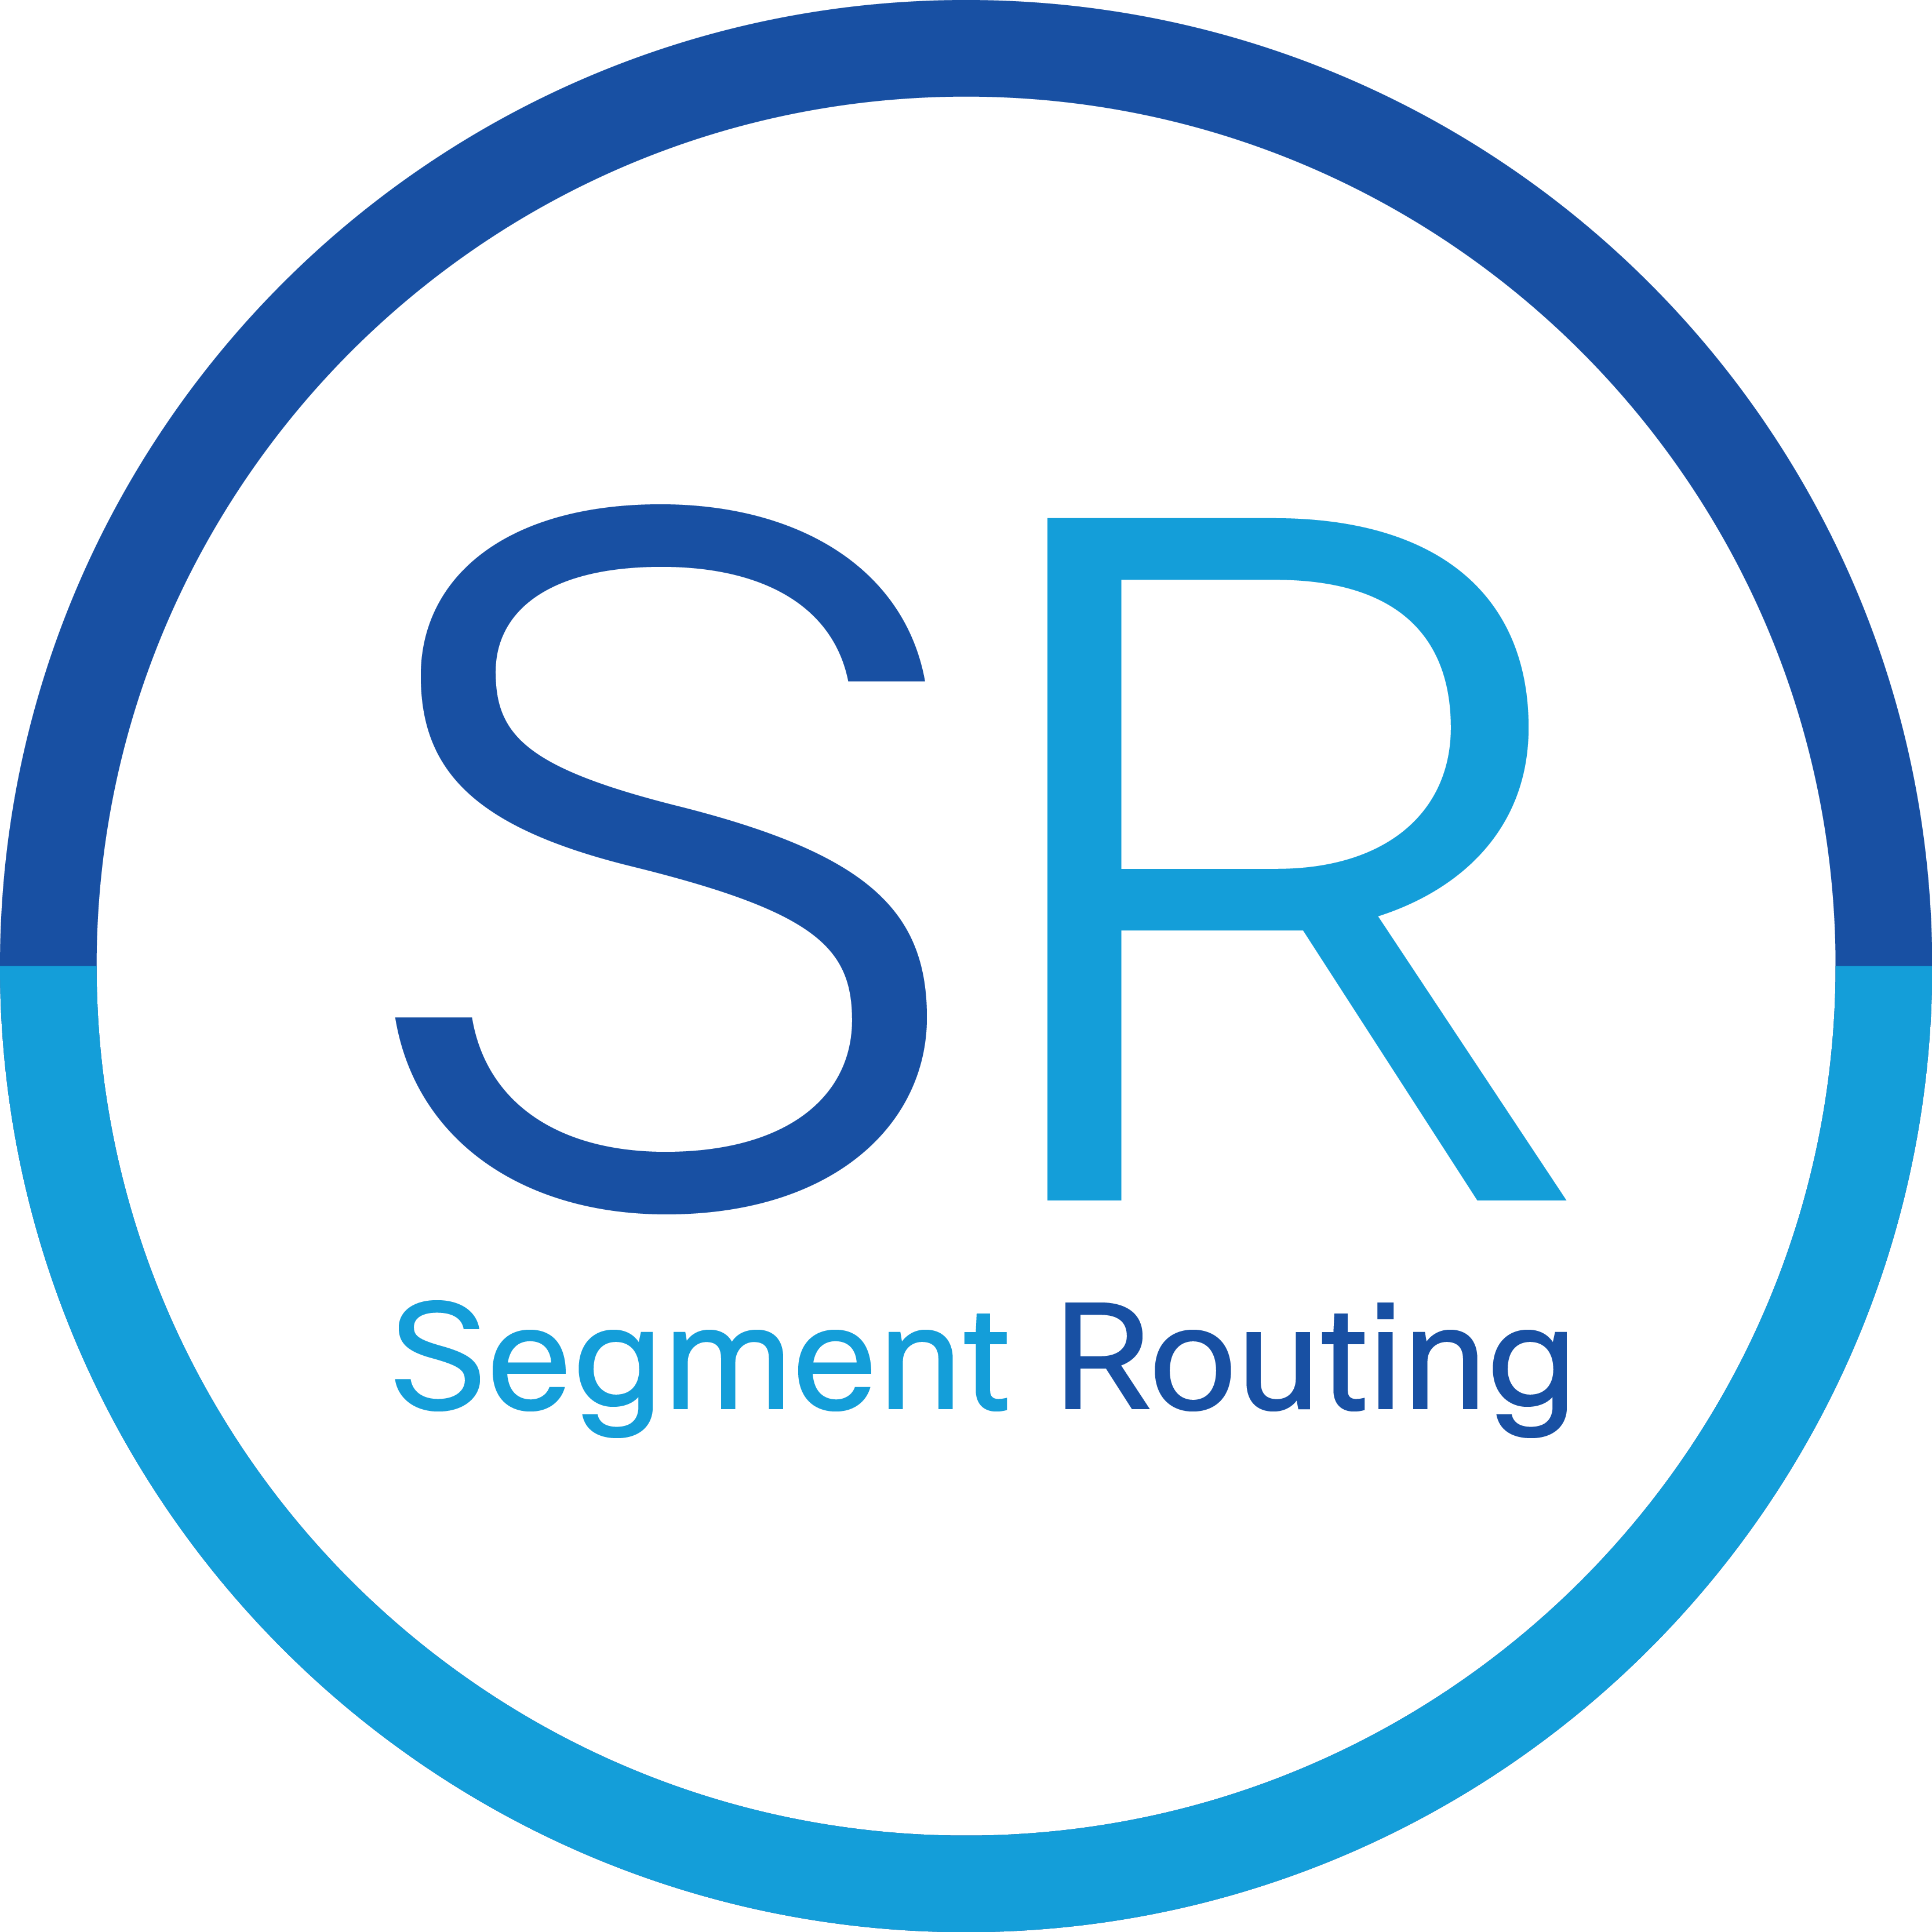 Segment-Routing logo